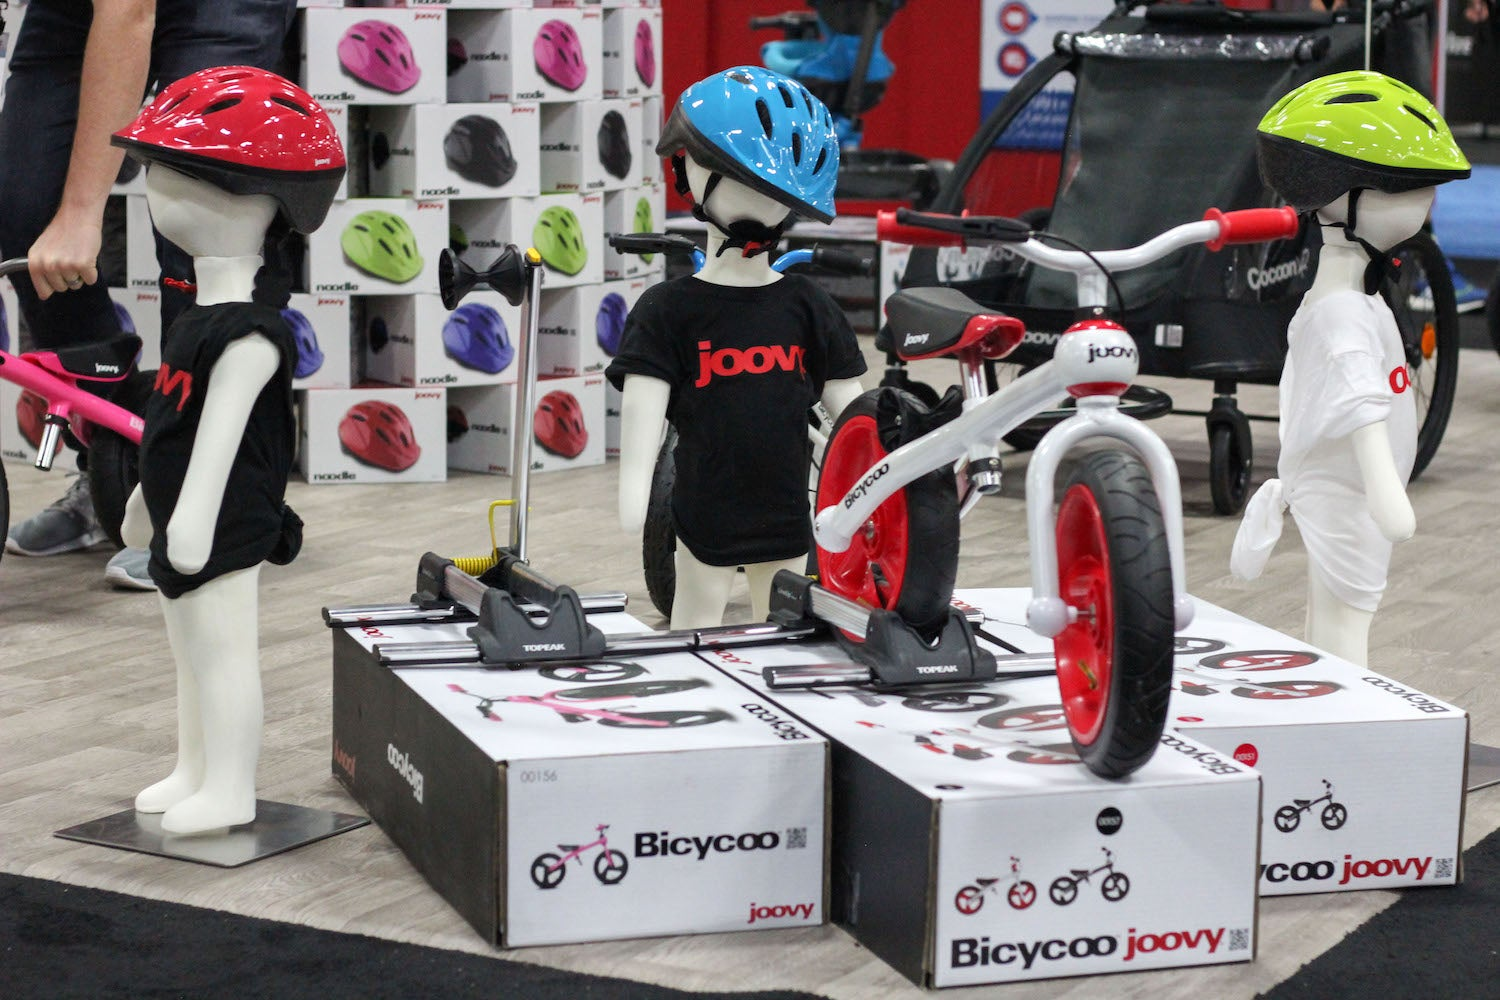 Joovy Bicycoo balance bike display